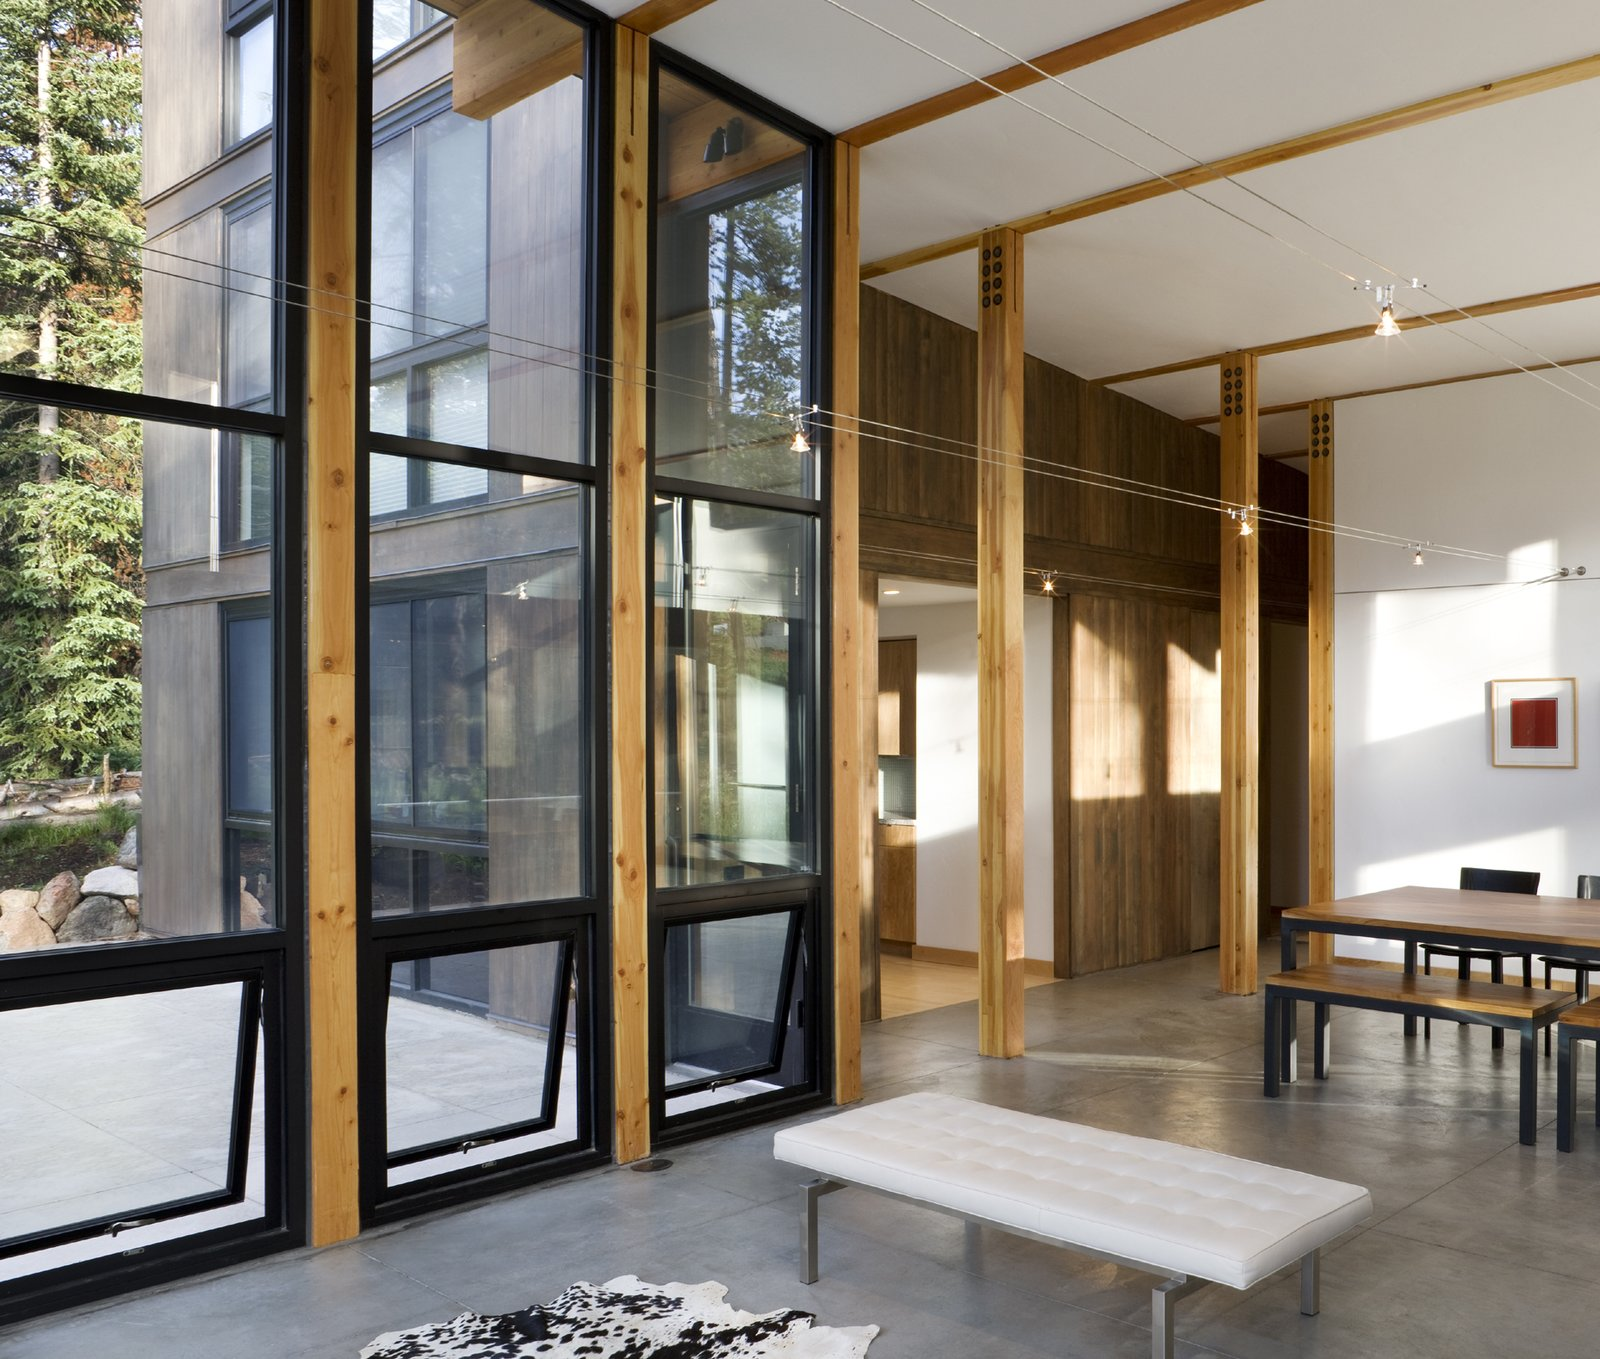 Living Room, Bench, and Concrete Floor  Weigel Residence by Substance Architecture